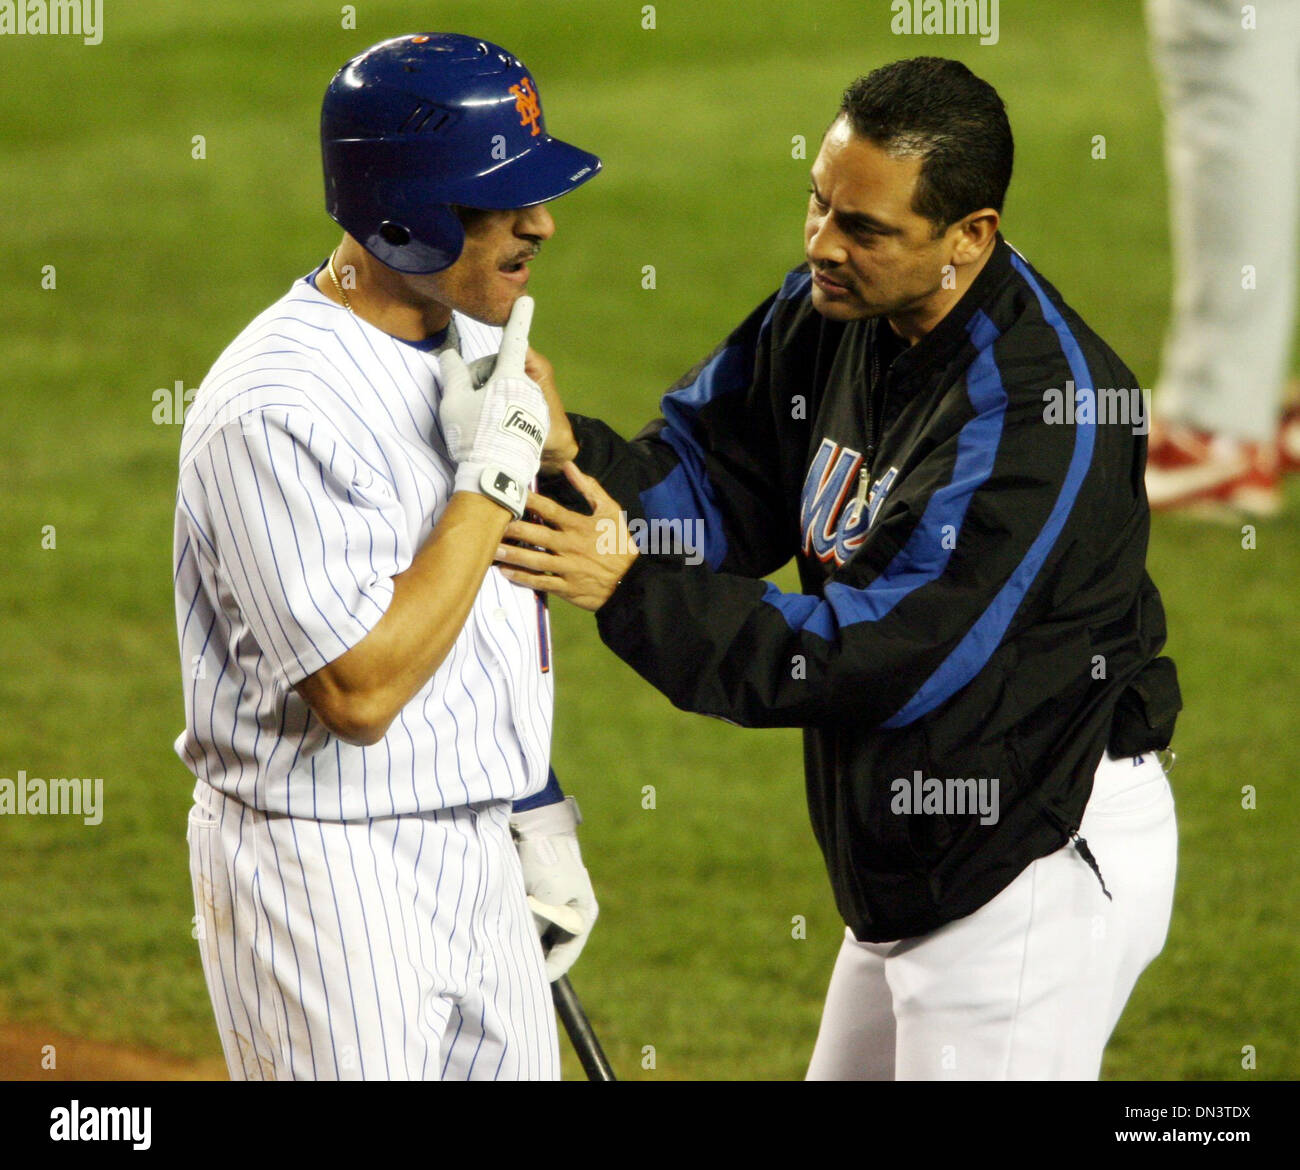 Oct 19, 2006; New York, NY, USA; MLB: New York Mets second baseman JOSE VALENTIN is check out by a trainer after Stock Photo